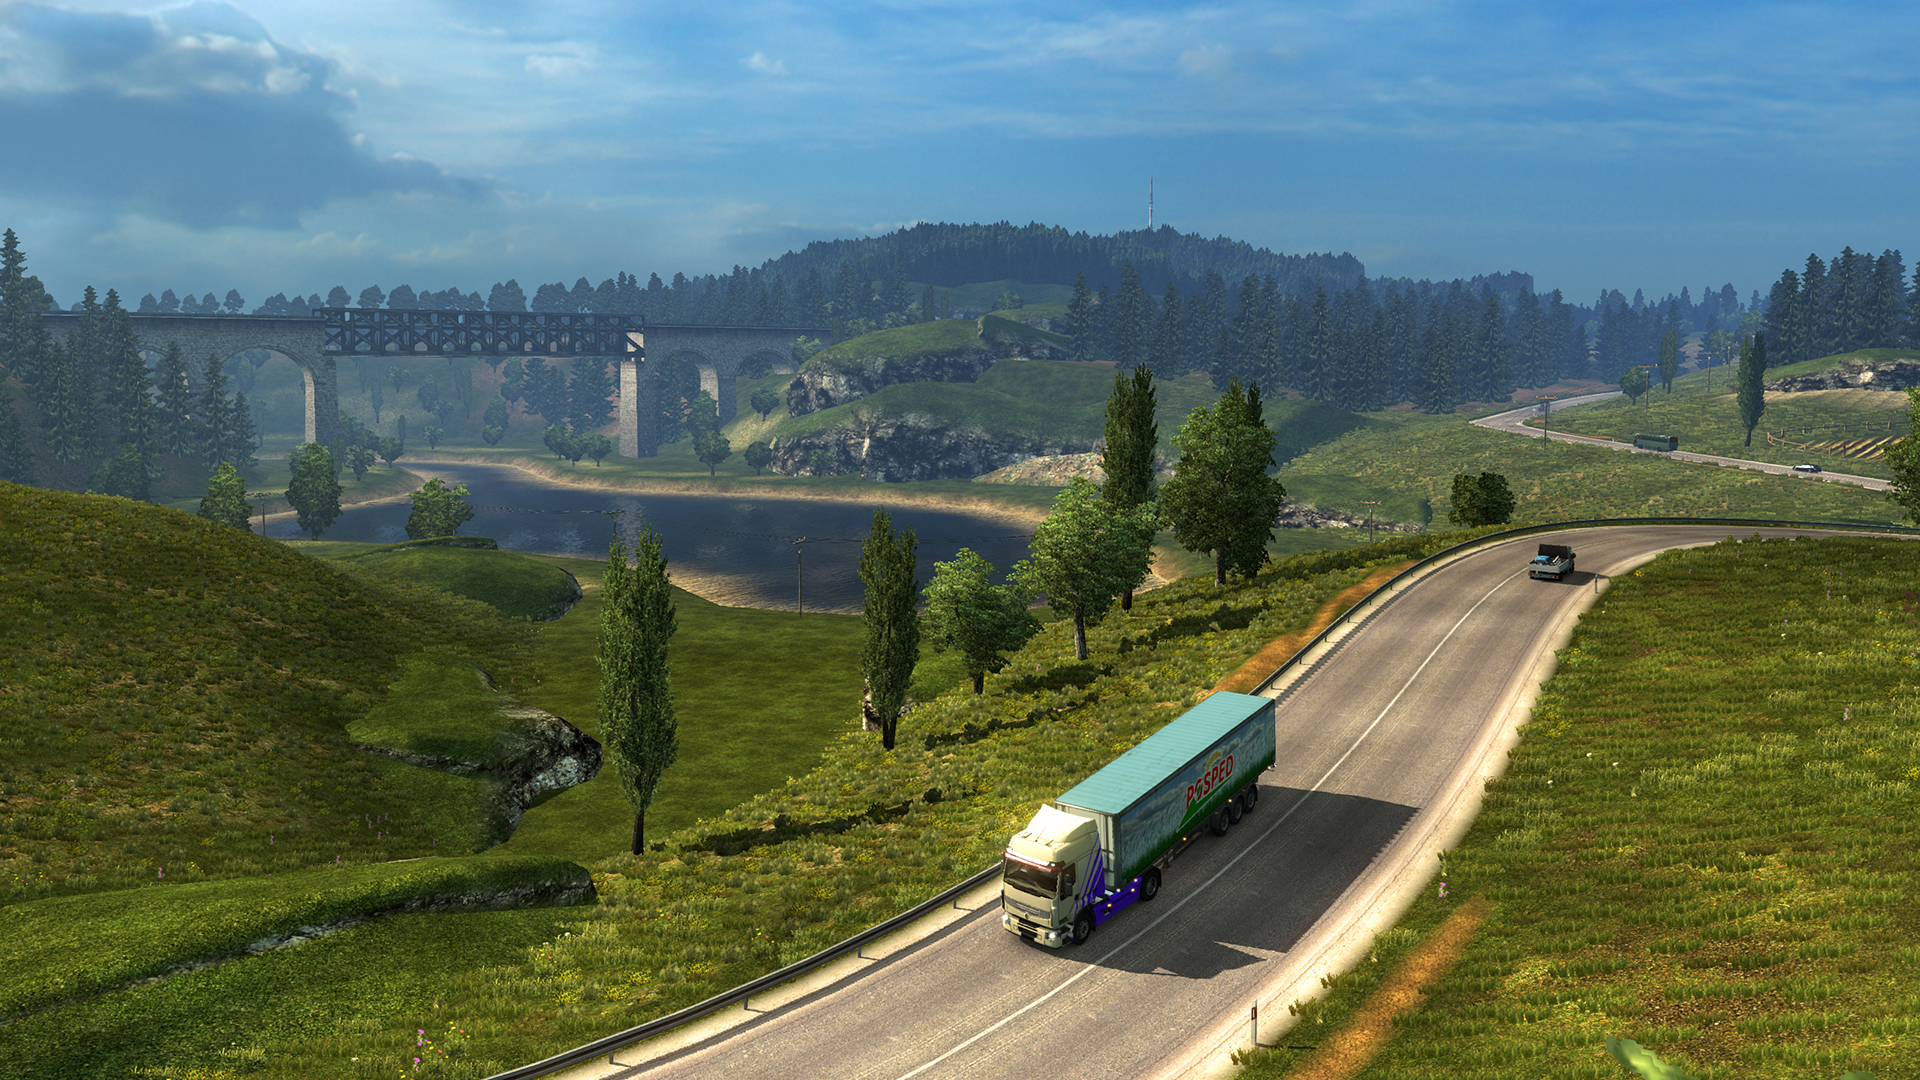 Euro truck simulator 2 full türkçe mac os x | full program i̇ndir.